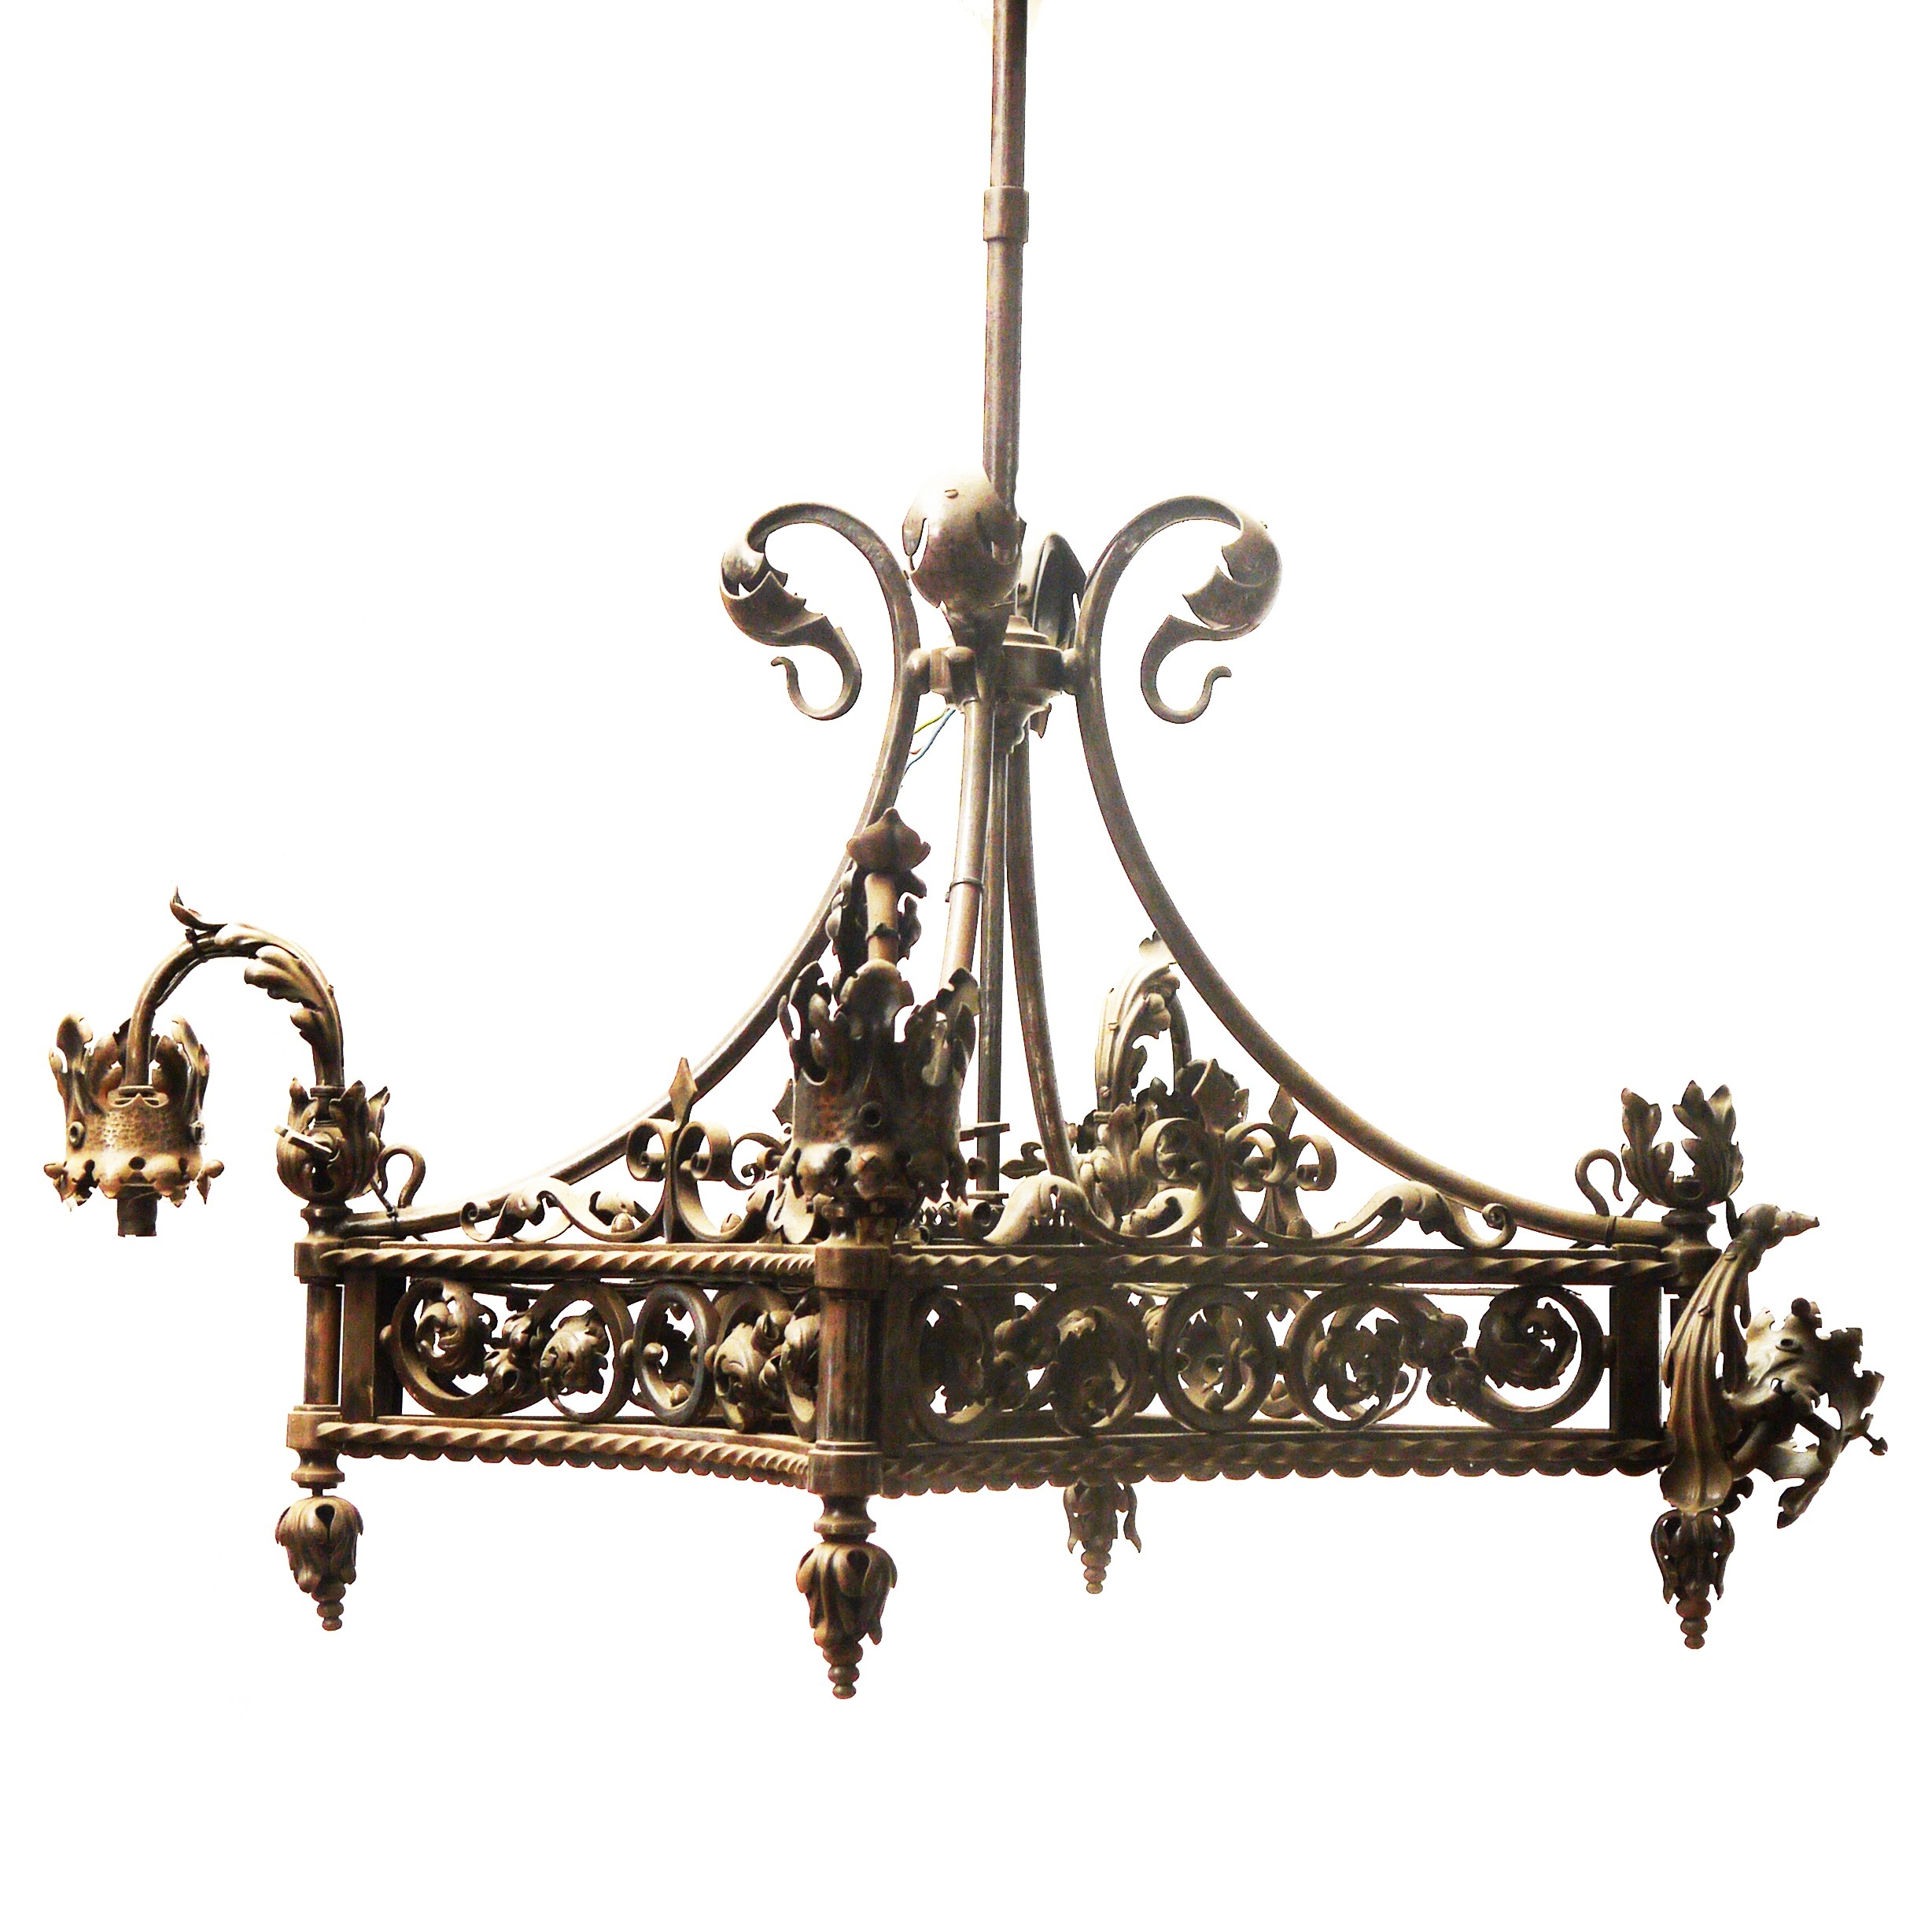 Furniture Classic Wrought Iron Chandelier For Your Home Classic Regarding Vintage Wrought Iron Chandelier (#5 of 12)